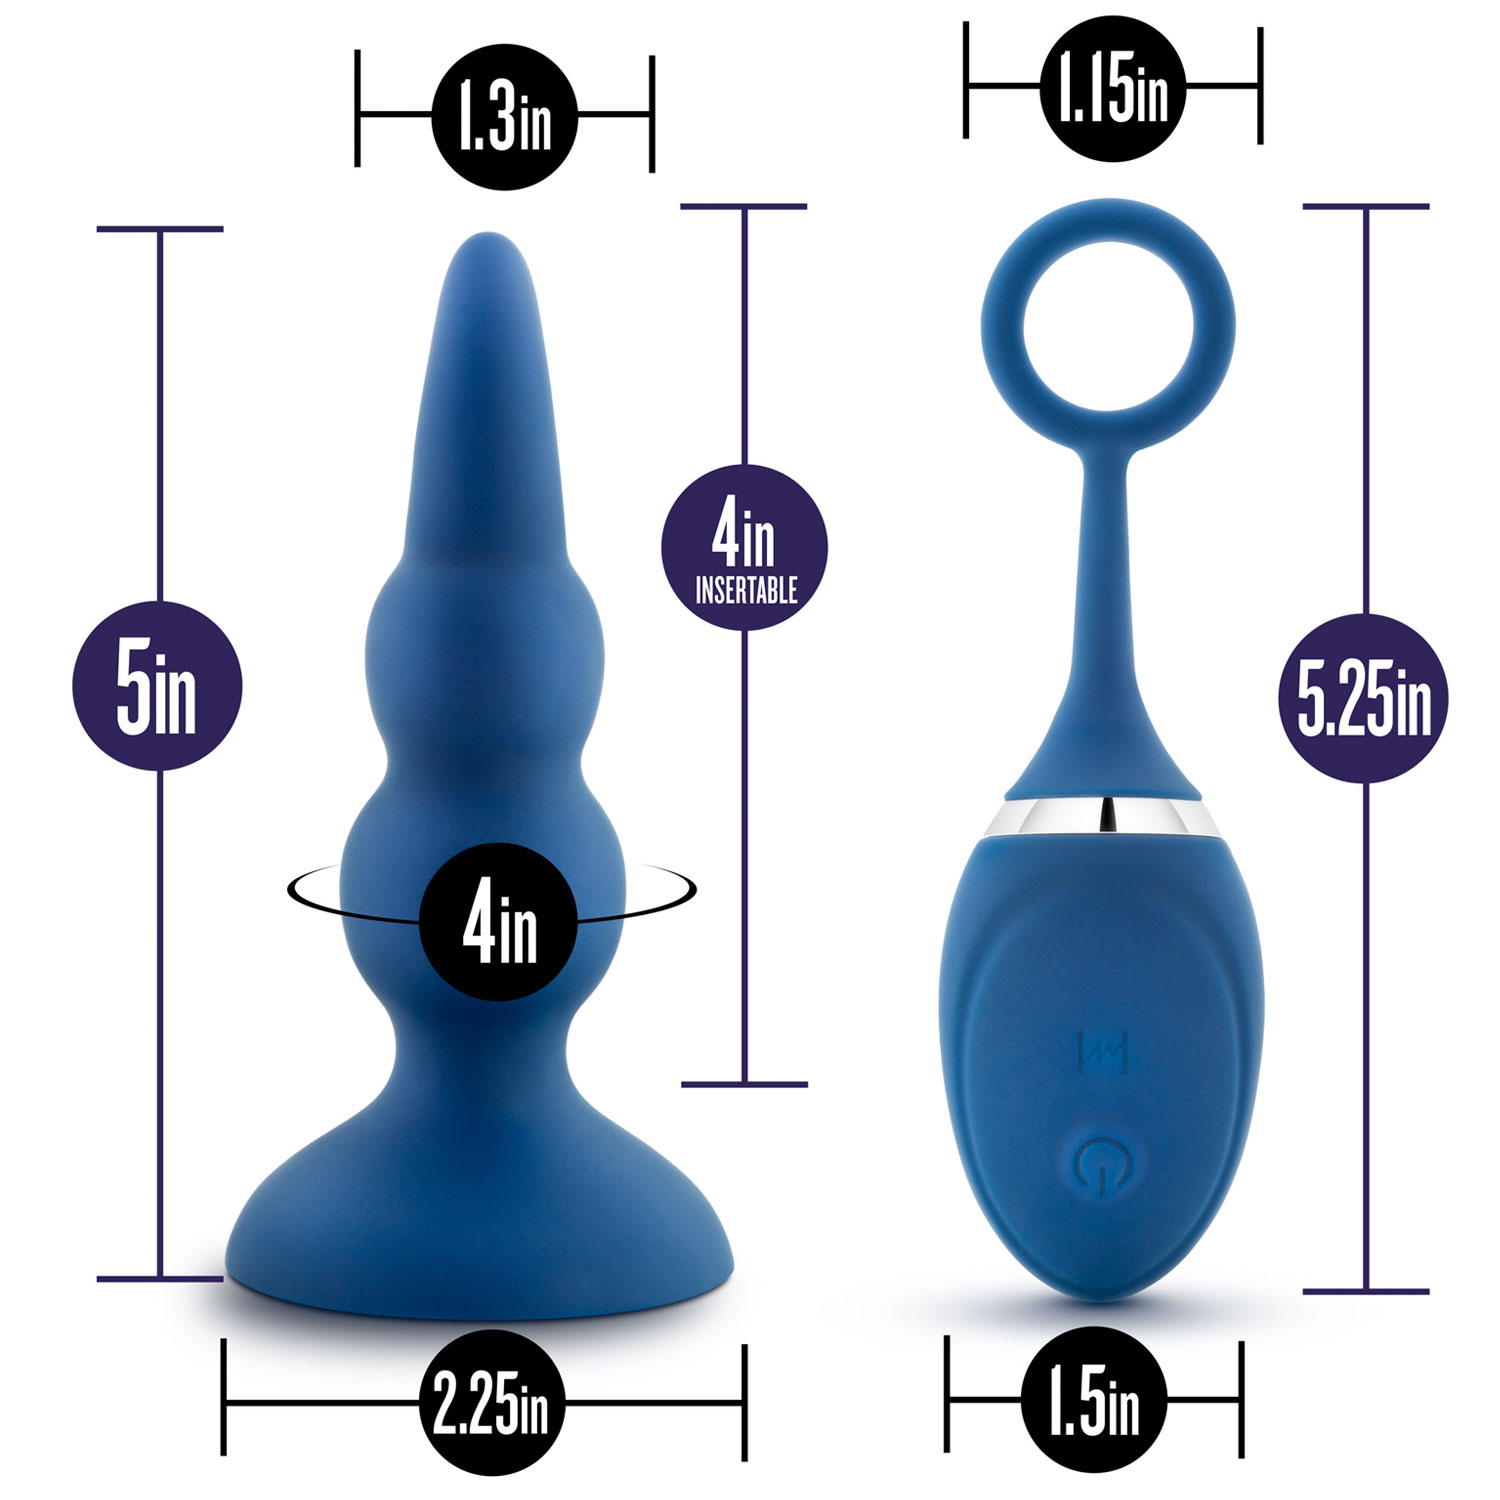 Performance Plus Sonic Rechargeable Silicone Butt Plug - Measurements